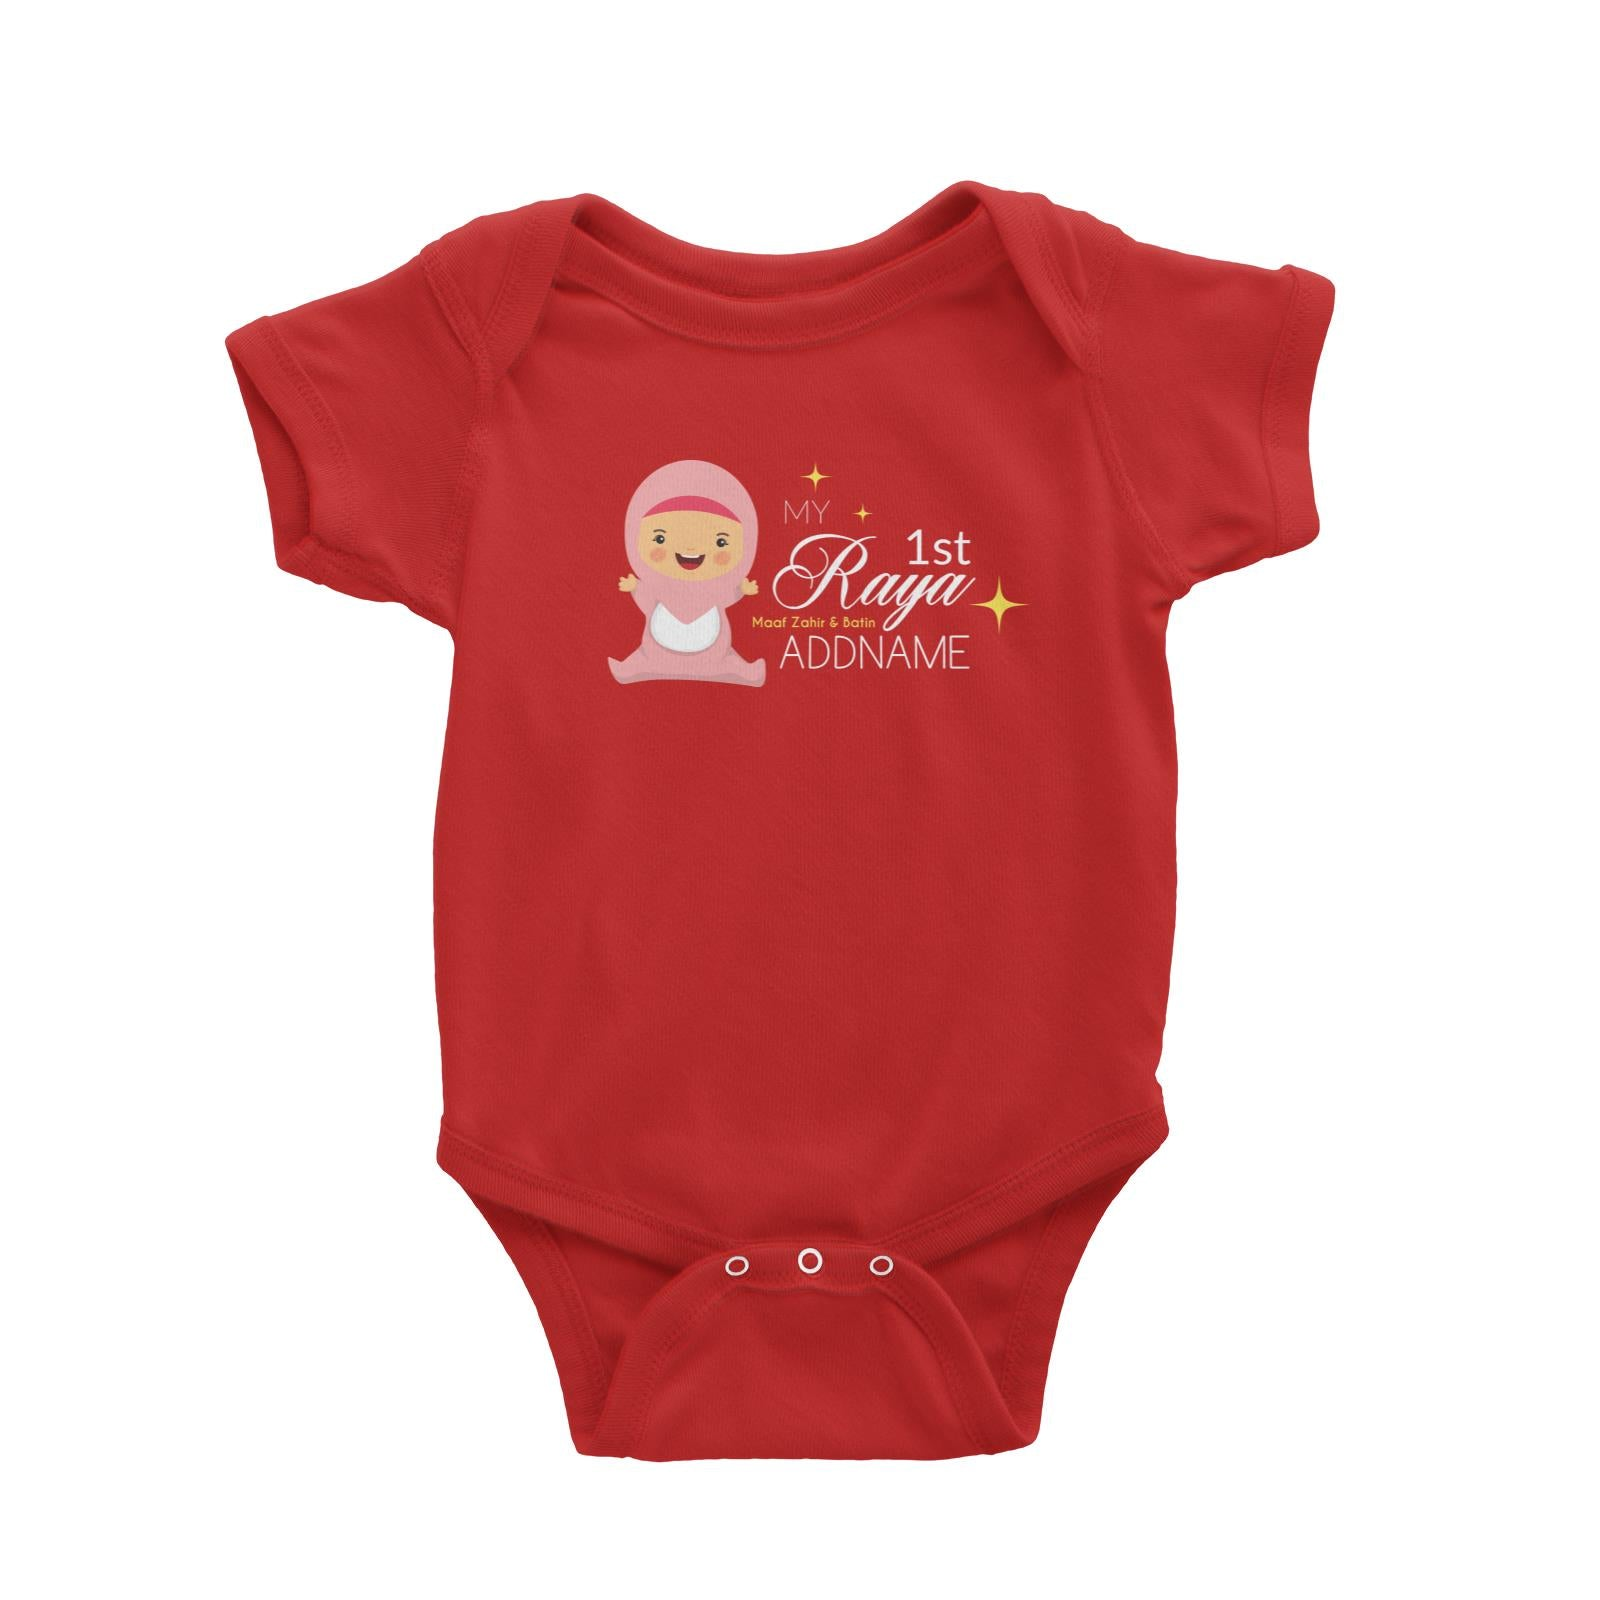 My 1st Raya Baby Girl Baby Romper  Personalizable Designs Sweet Character